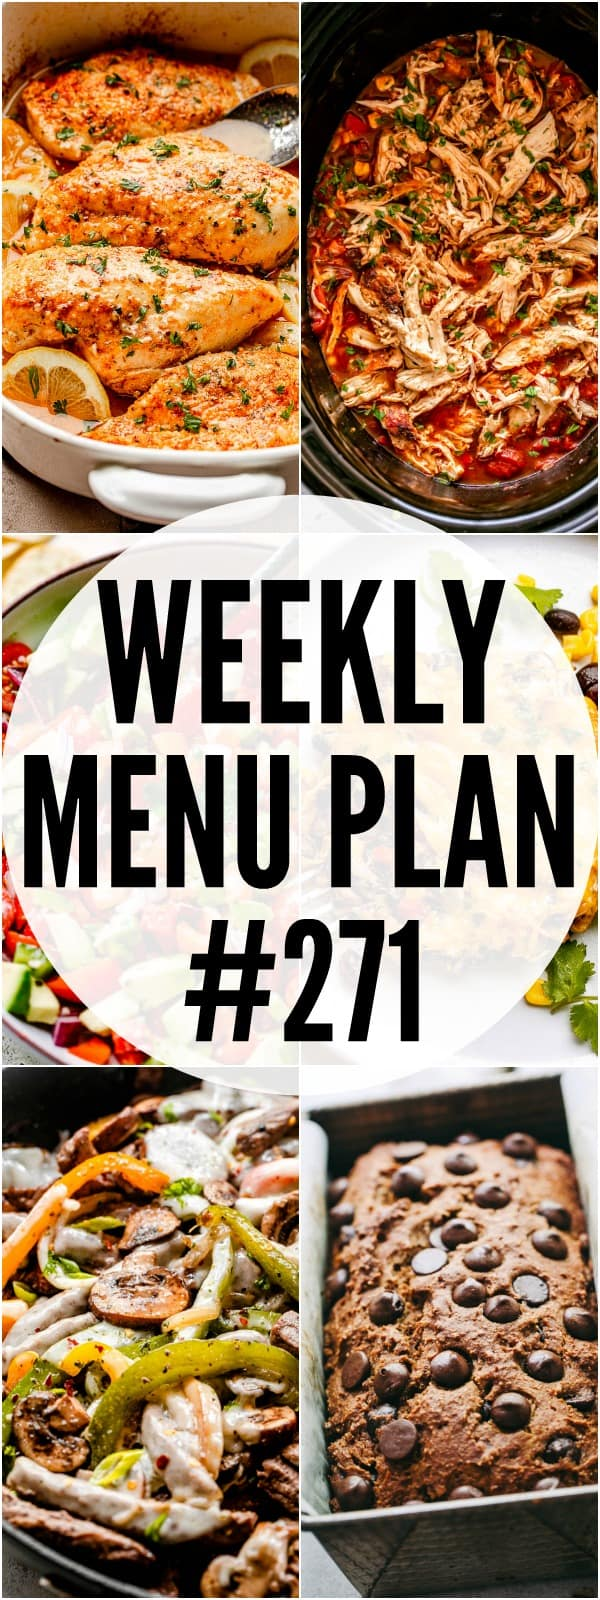 WEEKLY MENU PLAN #271 PIN IMAGE